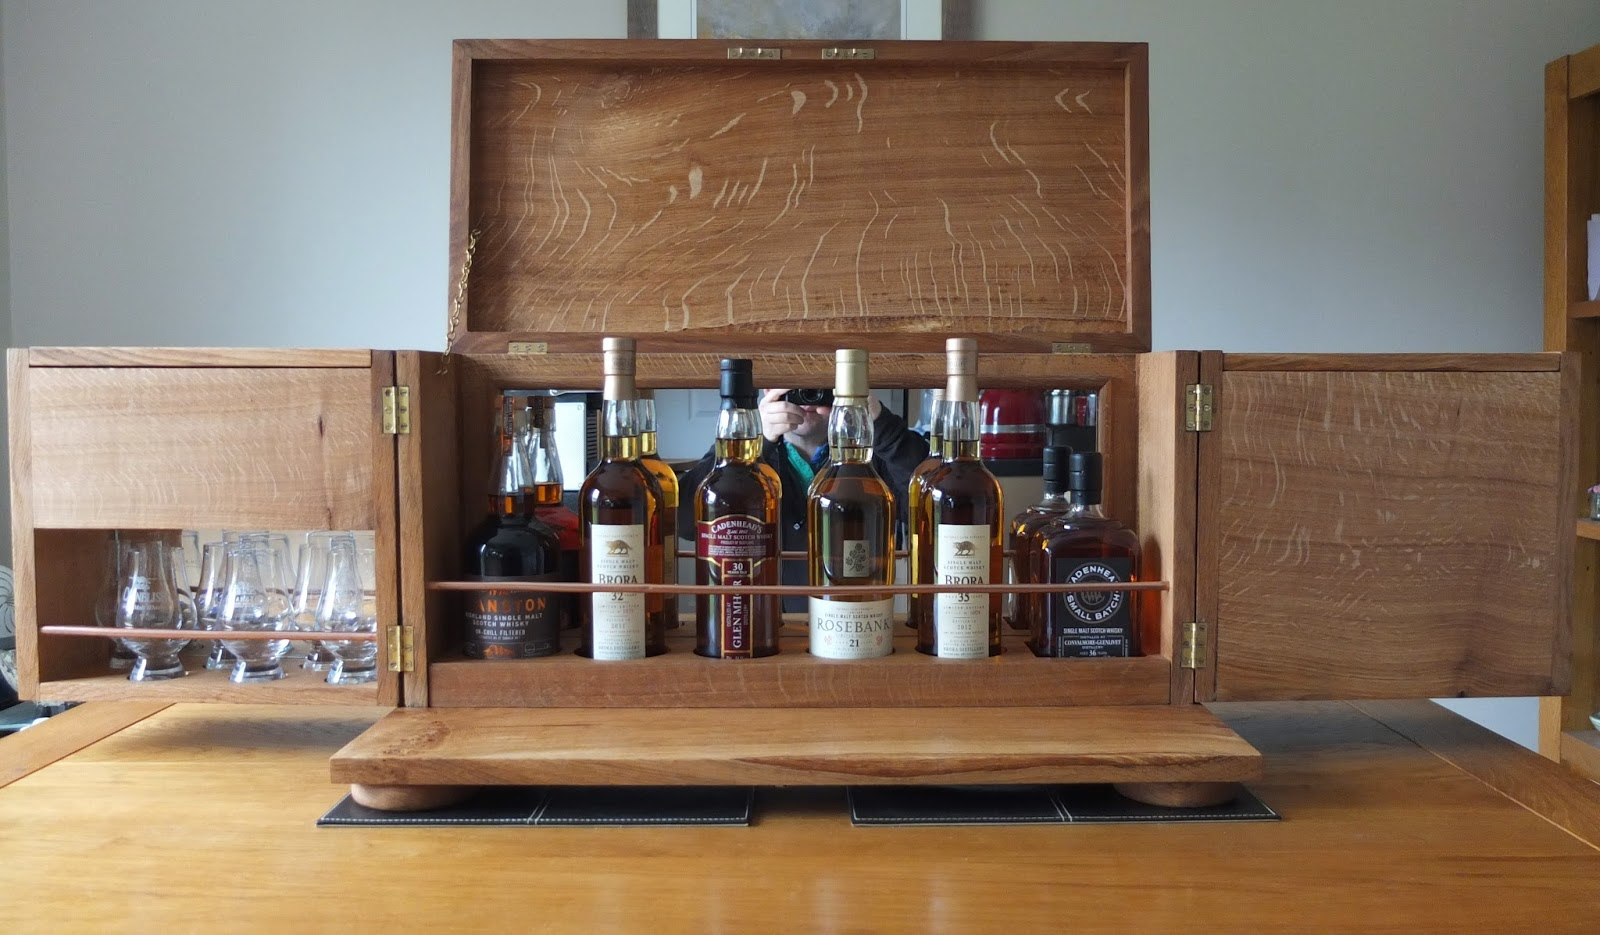 With The Doors Opened Out Base Beneath Becomes Exposed And Can Act As That Whisky Plinth I Once Envisaged Bottle Area Has Room For 6 Bottles Of Varying